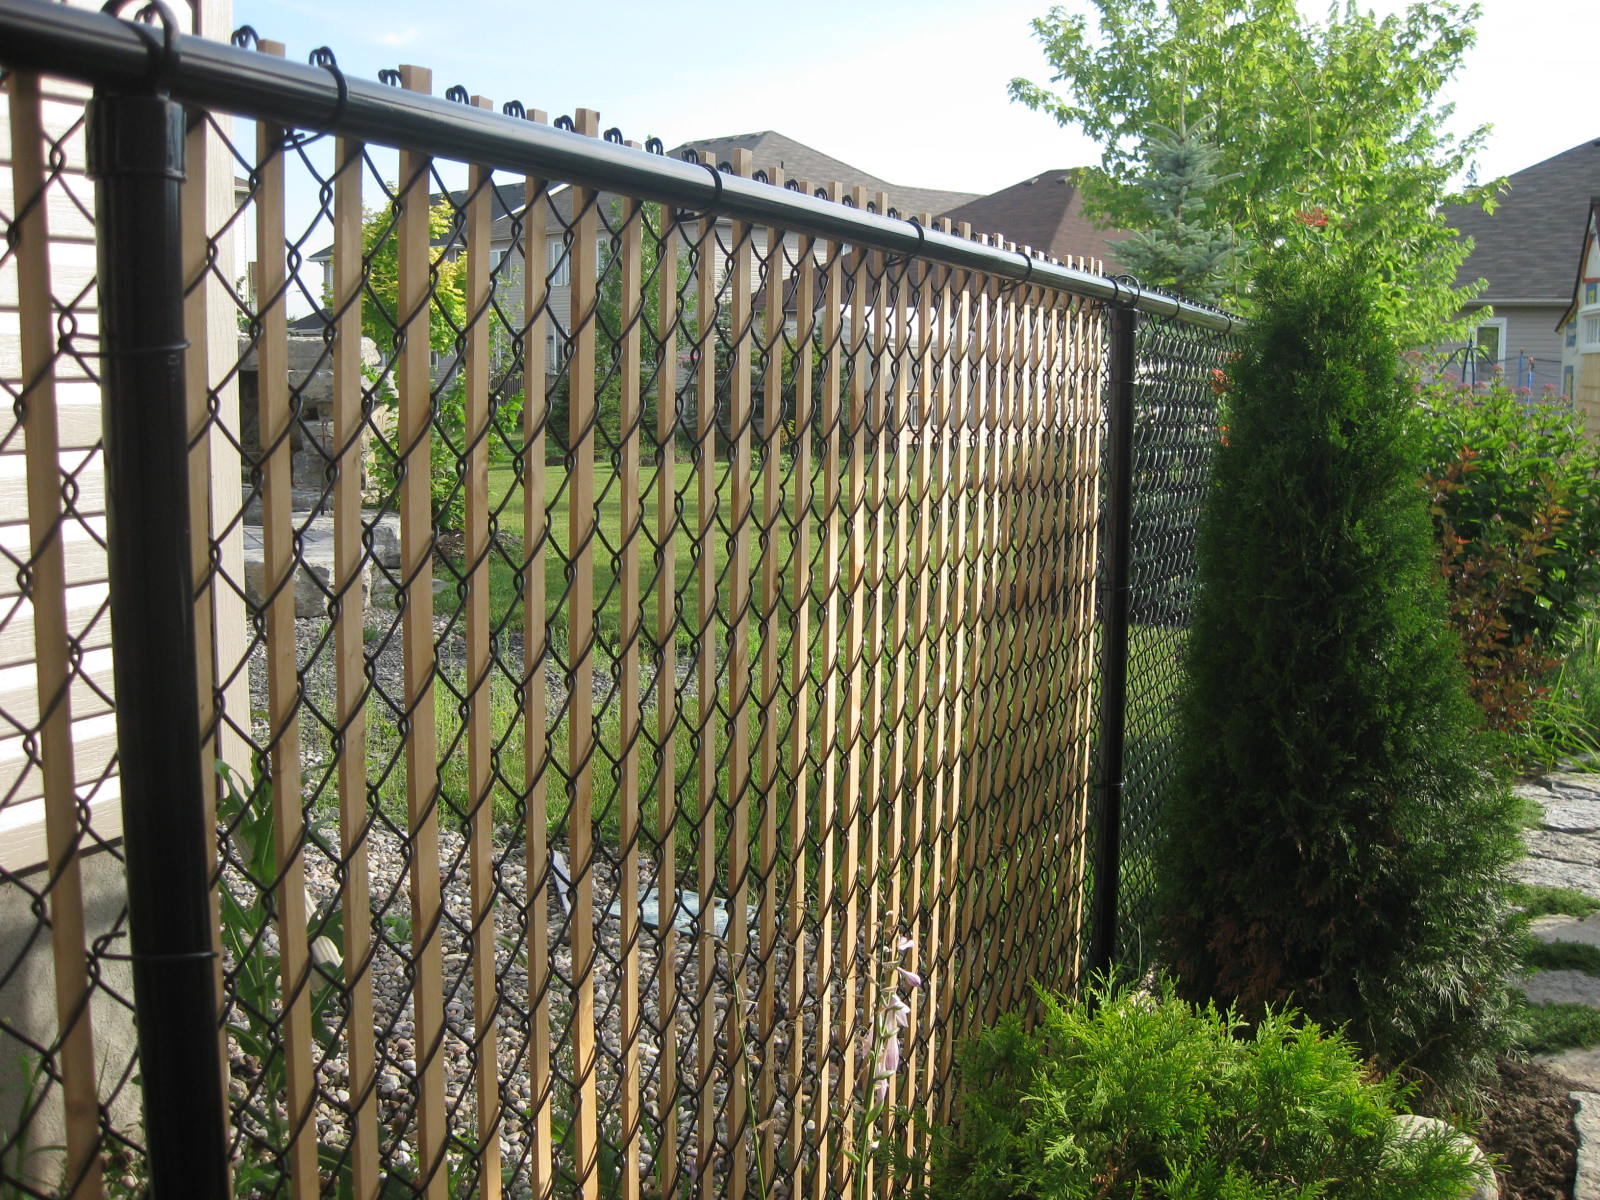 Privacy screen for chain link fence sears - Chain Link Fencing Provides Versatility Without Sacrificing Security